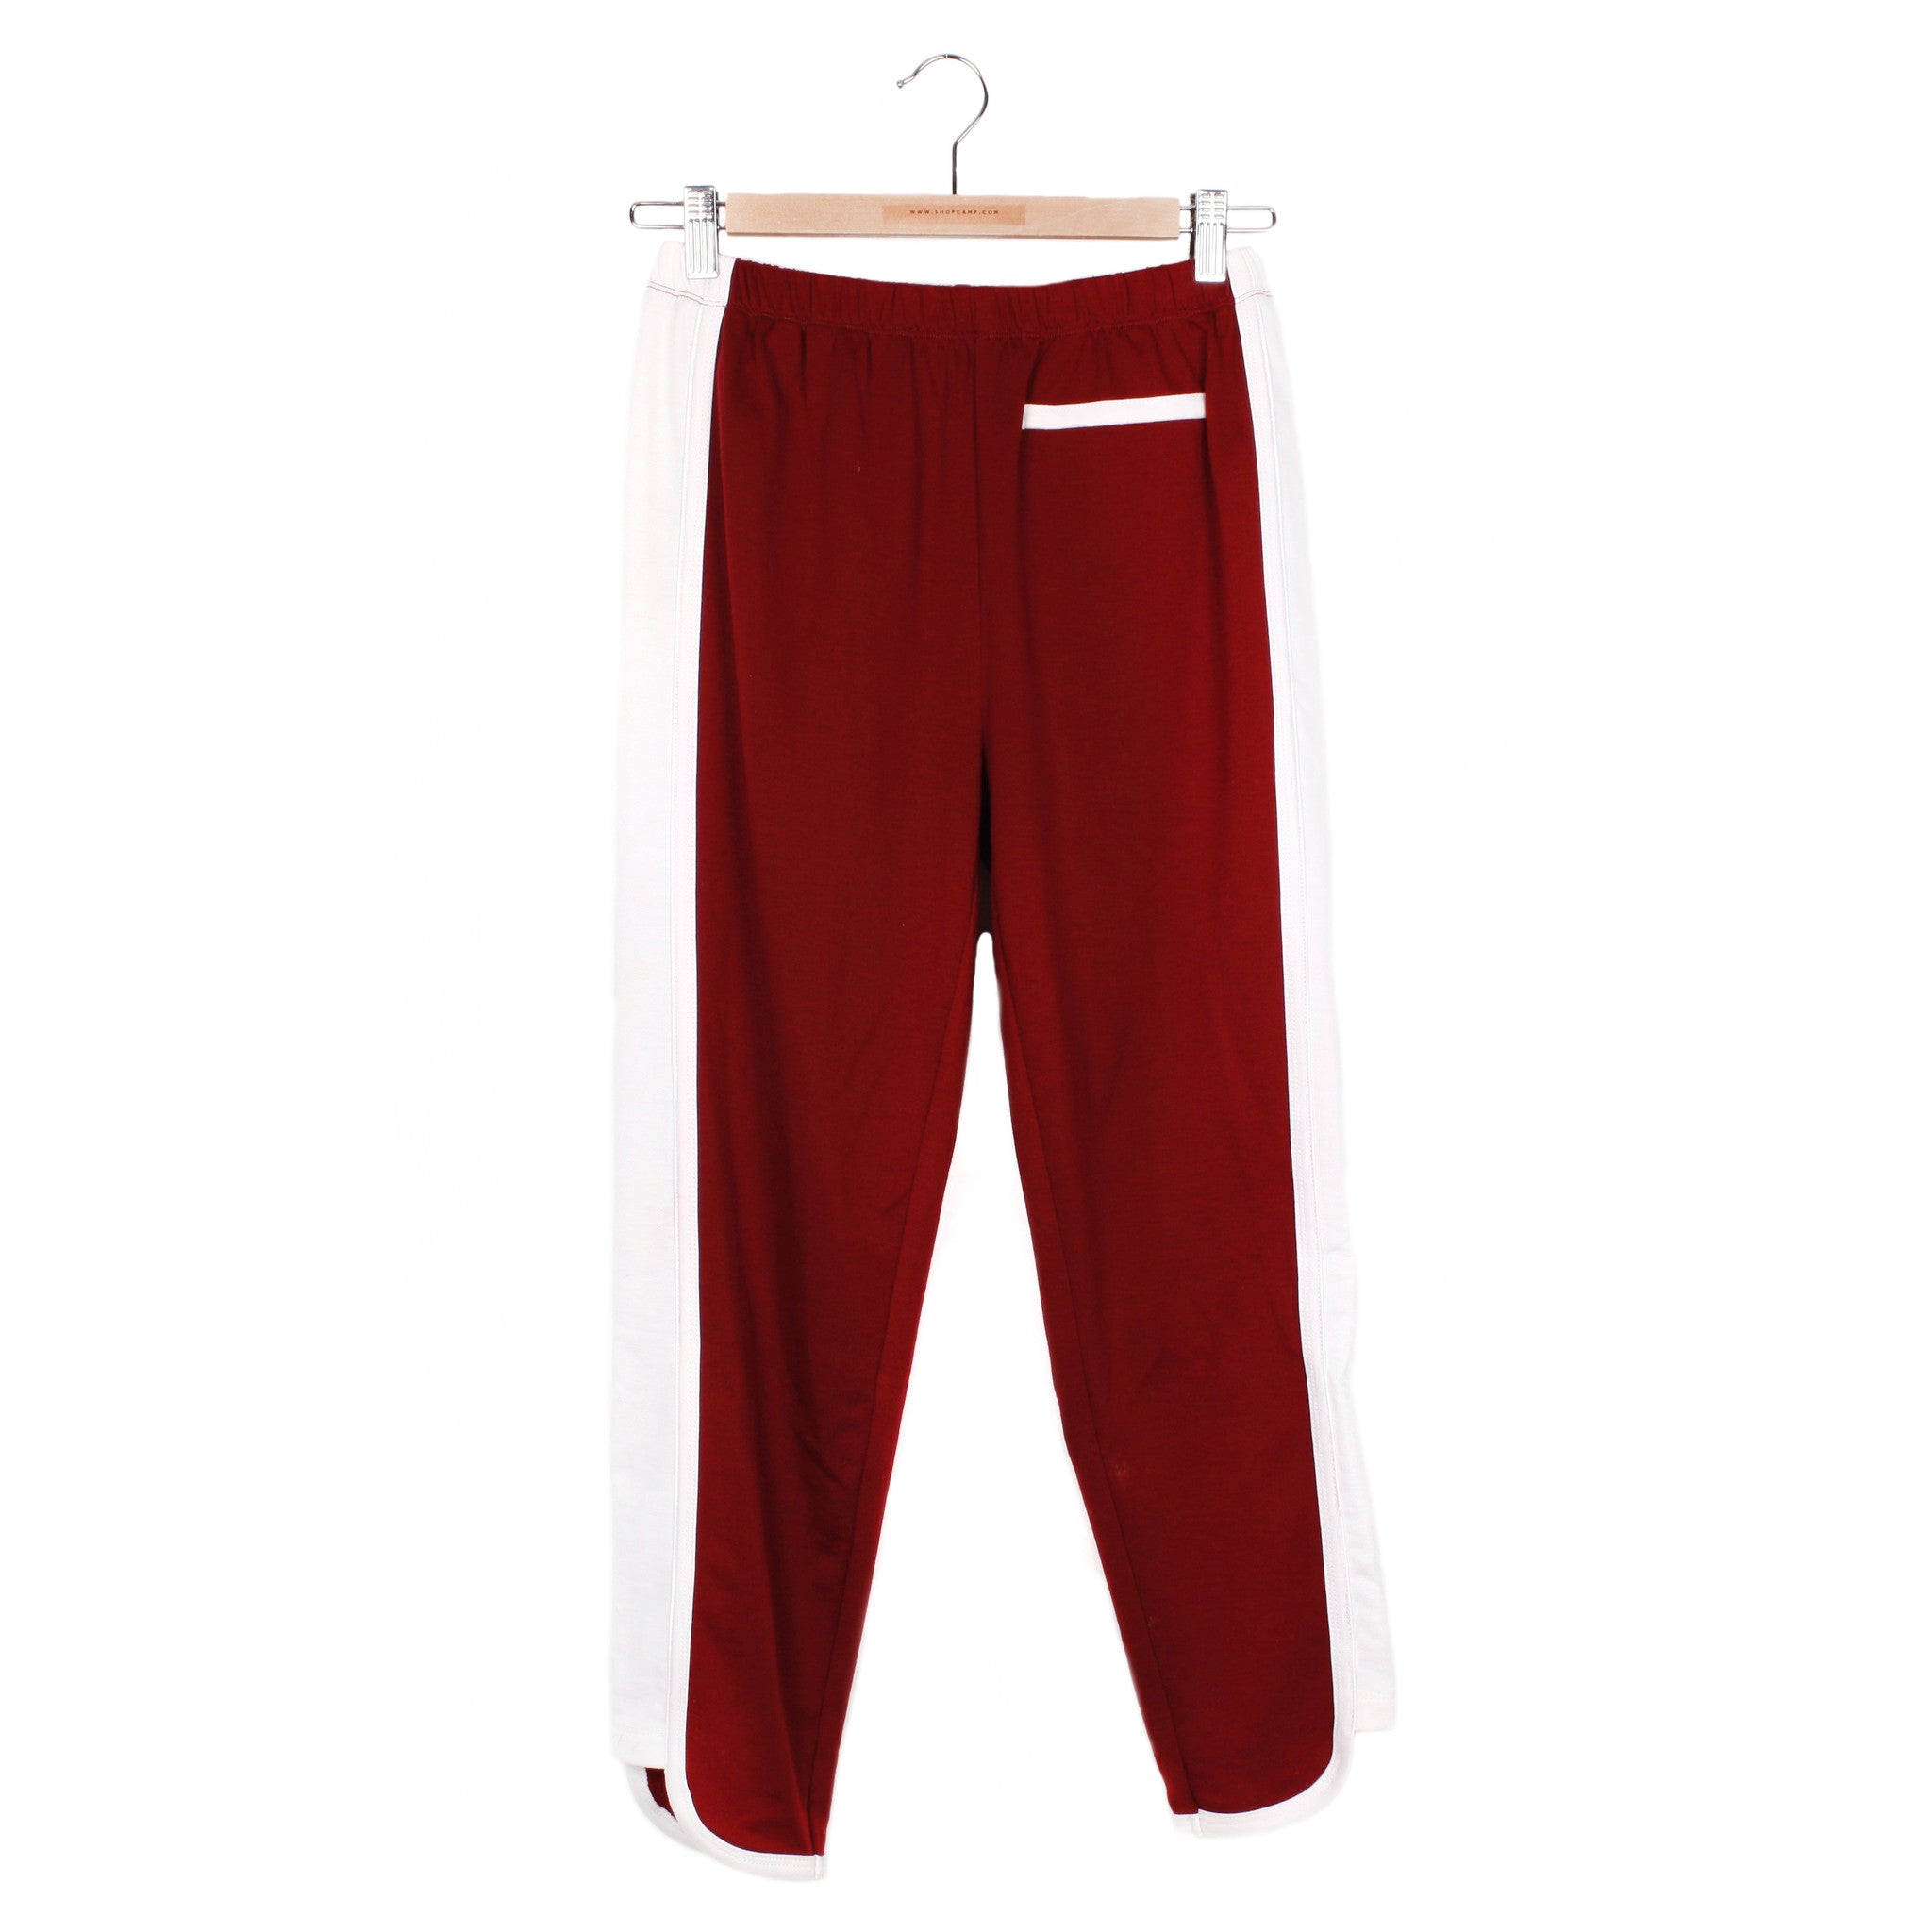 ROLLER DERBY SWEATS - MAROON / VINTAGE WHITE / SMALL - CAMP Collection - 1